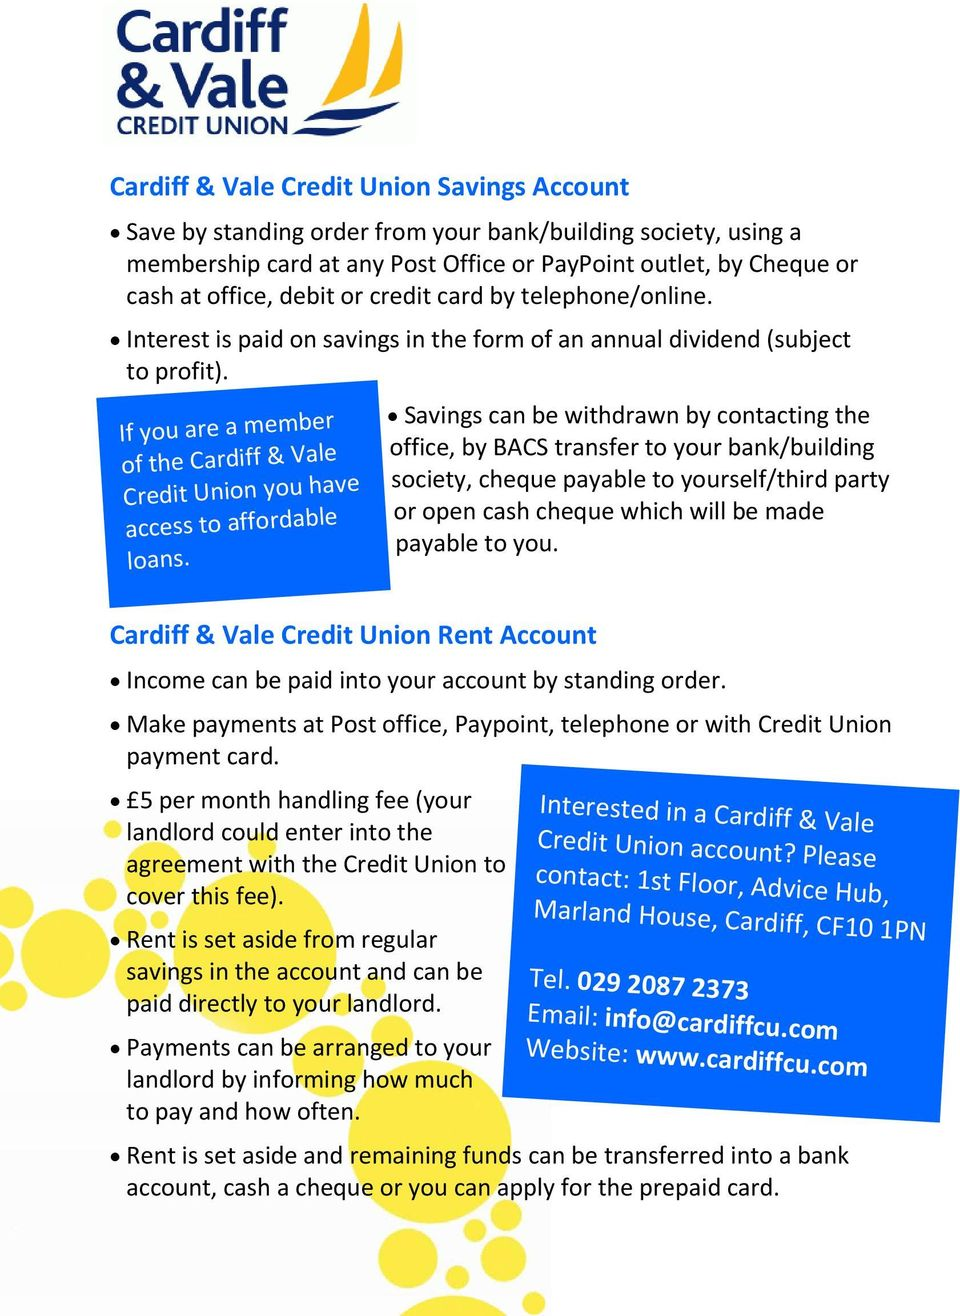 If you are a member of the Cardiff & Vale Credit Union you have access to affordable loans.